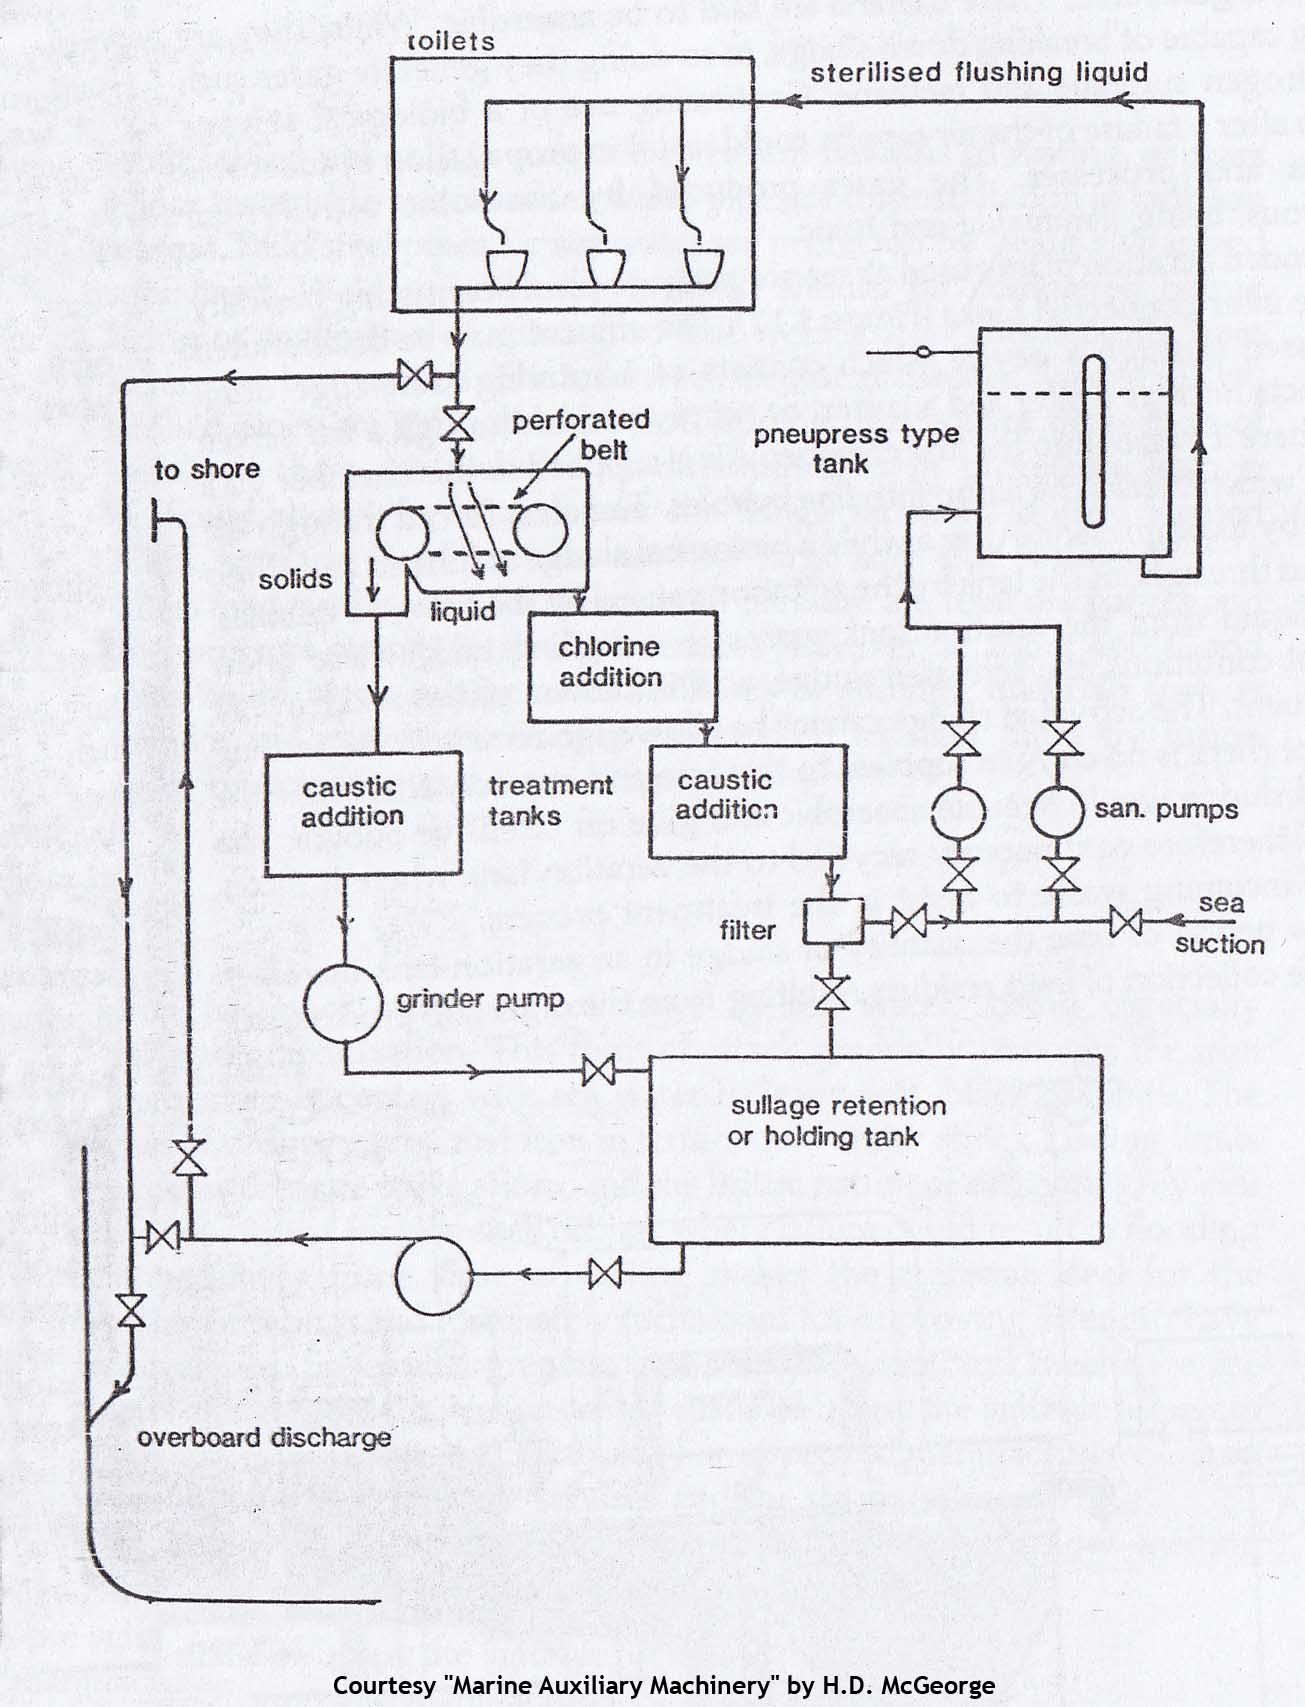 Septic System Wiring Diagram Guide And Troubleshooting Of Effluent Pump Grinder Get Free Image About Tank